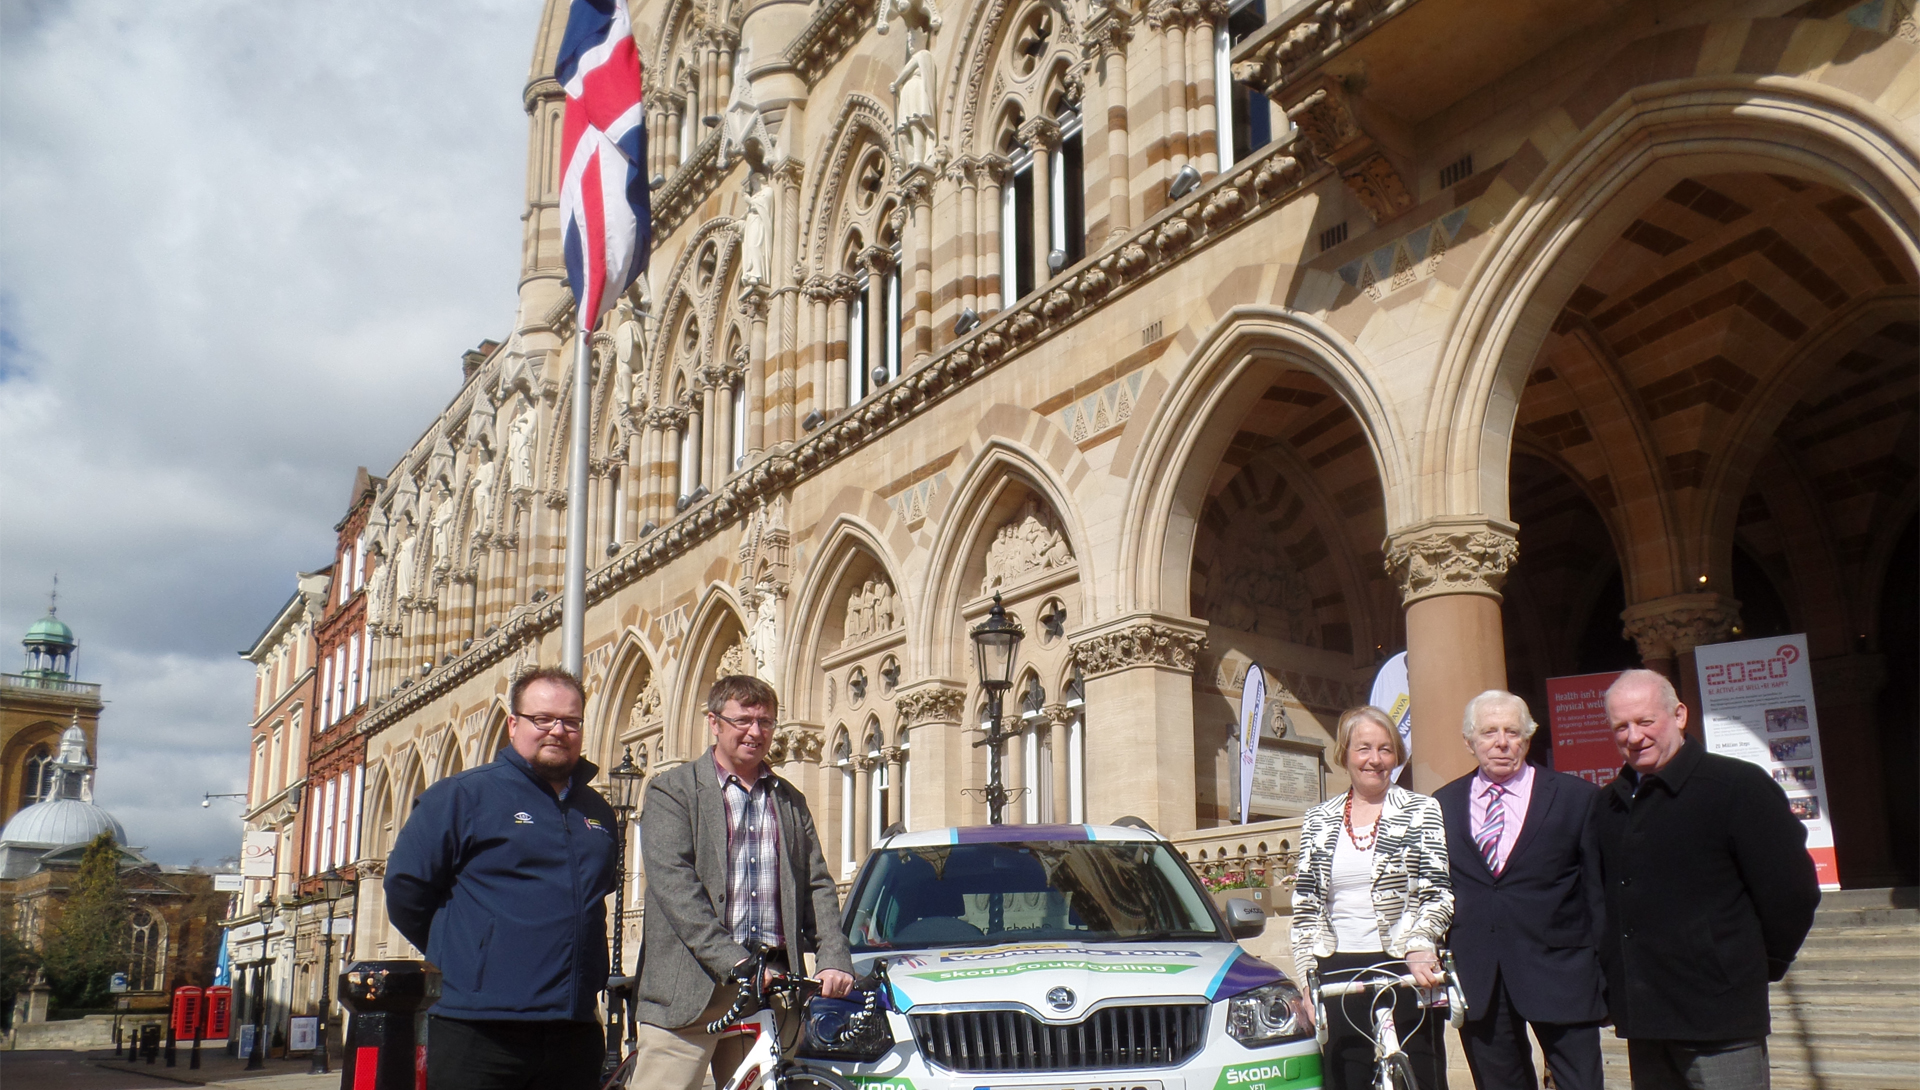 Northamptonshire's Aviva Women's Tour stage revealed